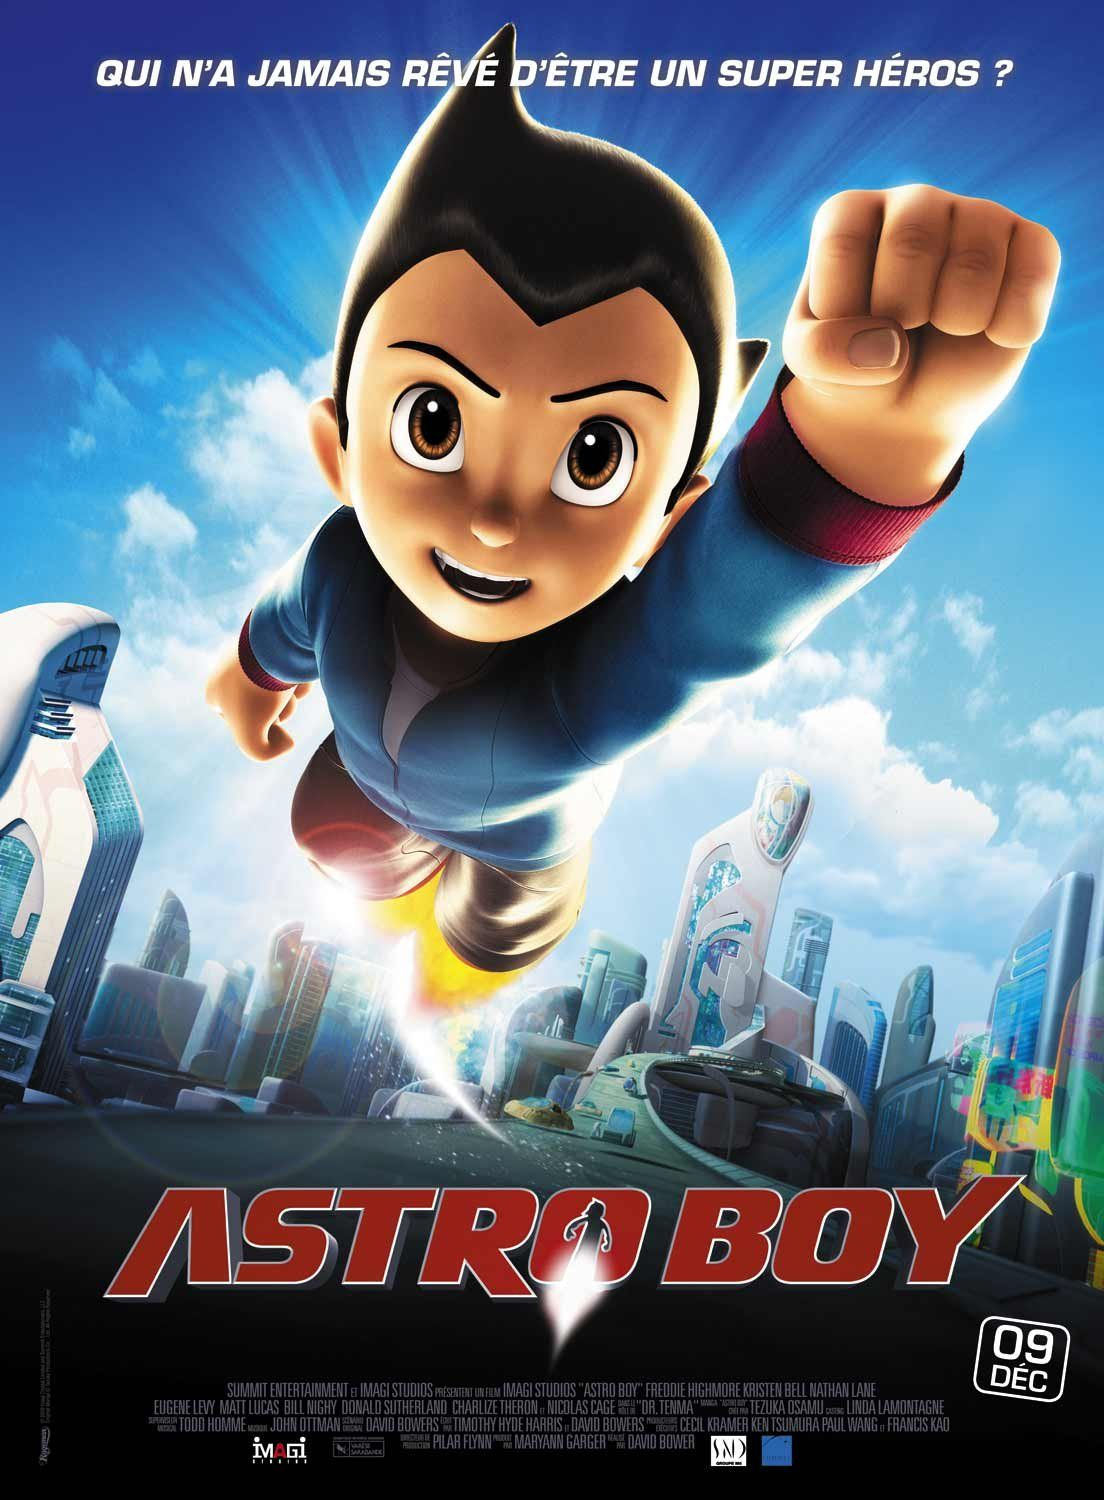 Extra large movie poster image for astro boy